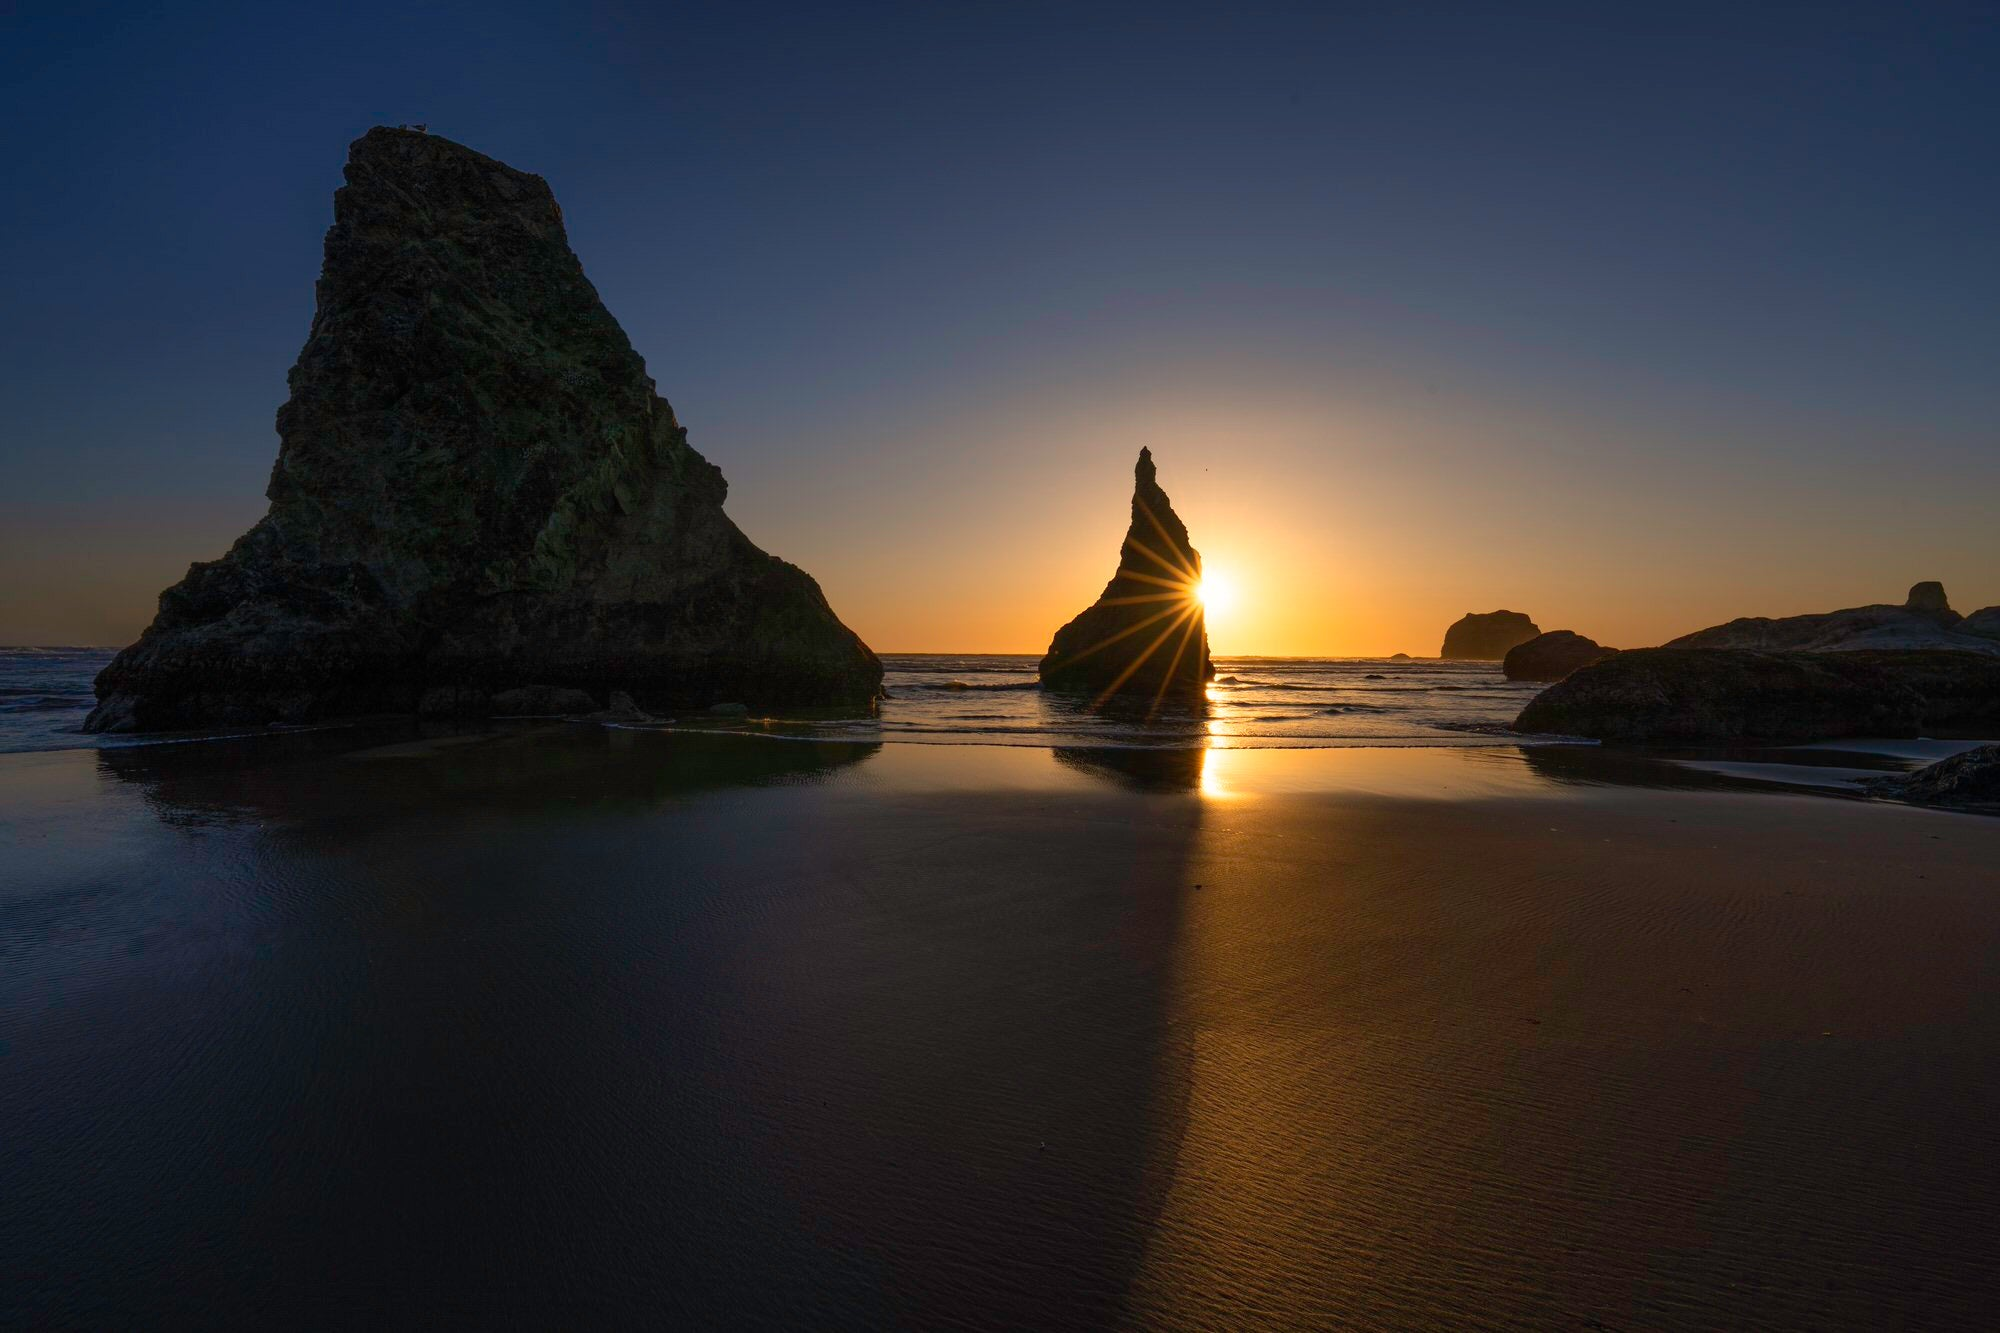 Sony-Alpha-Universe-Photo-by-Don-Smith-14mm-GM-Sunstar-and-WIzards-Hat-Bandon-Beach.jpeg